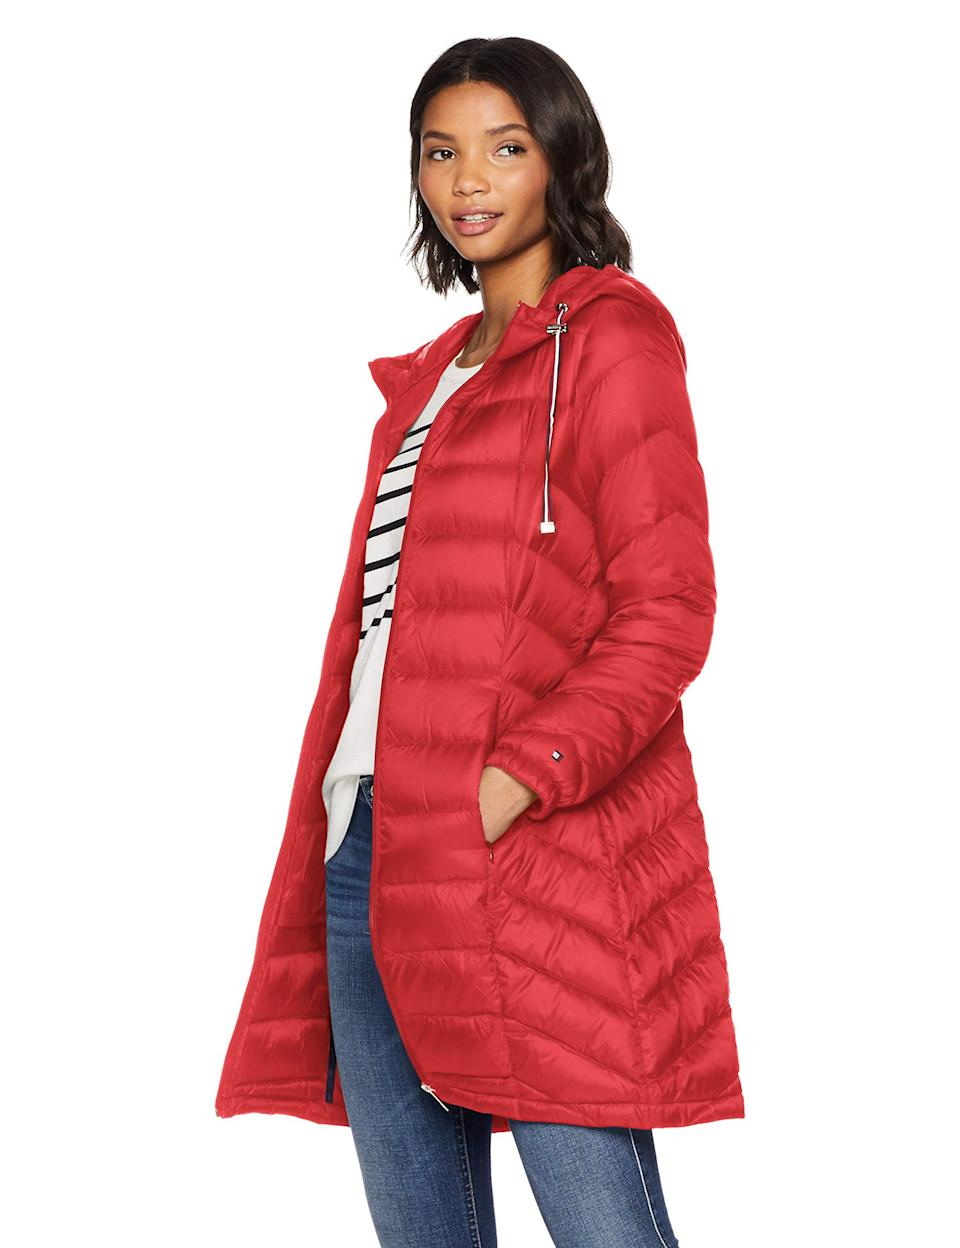 "<br><br><strong>Tommy Hilfiger</strong> Mid Length Packable Down Chevron Quilt Coat, $, available at <a href=""https://amzn.to/34as6OA"" rel=""nofollow noopener"" target=""_blank"" data-ylk=""slk:Amazon"" class=""link rapid-noclick-resp"">Amazon</a>"